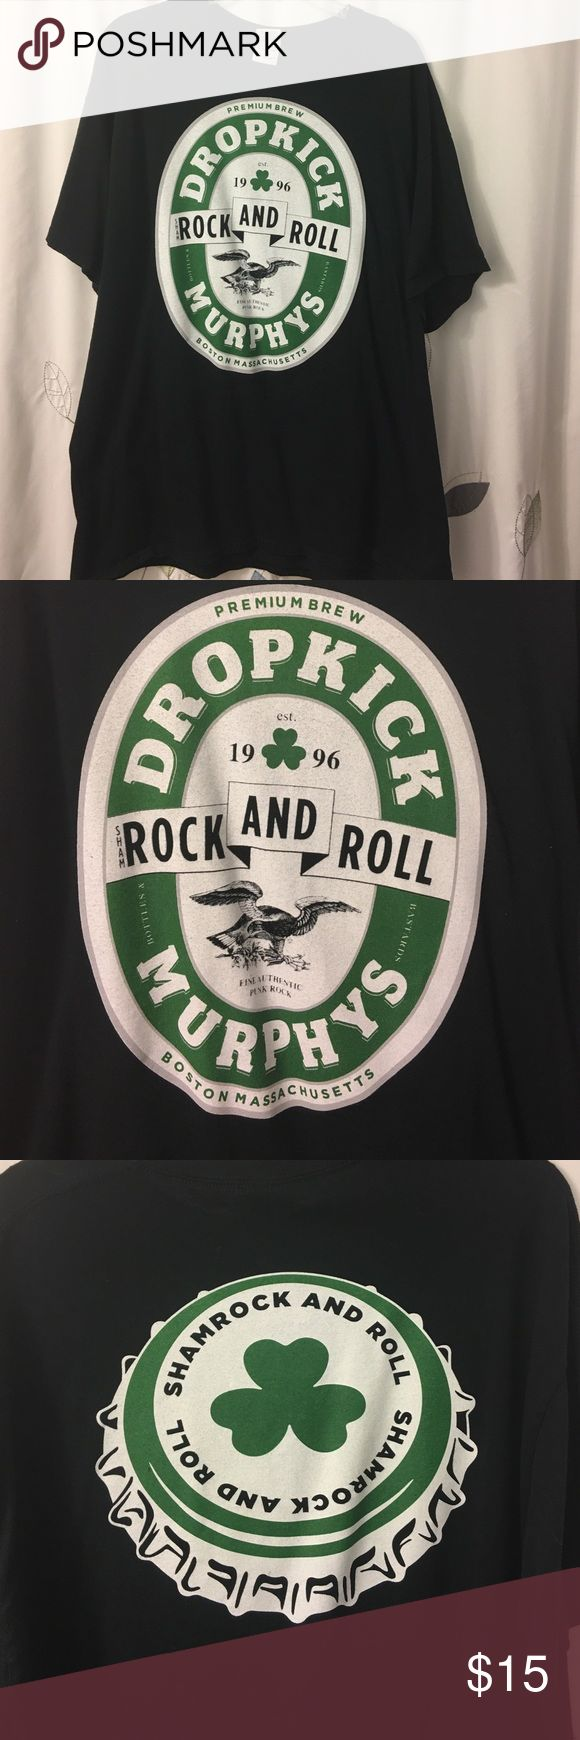 Dropkick Murphys Concert shirt Worn once and bought from a Dropkick Murphy's show in Raleigh NC. Perfect condition only washed once! Shirts Tees - Short Sleeve